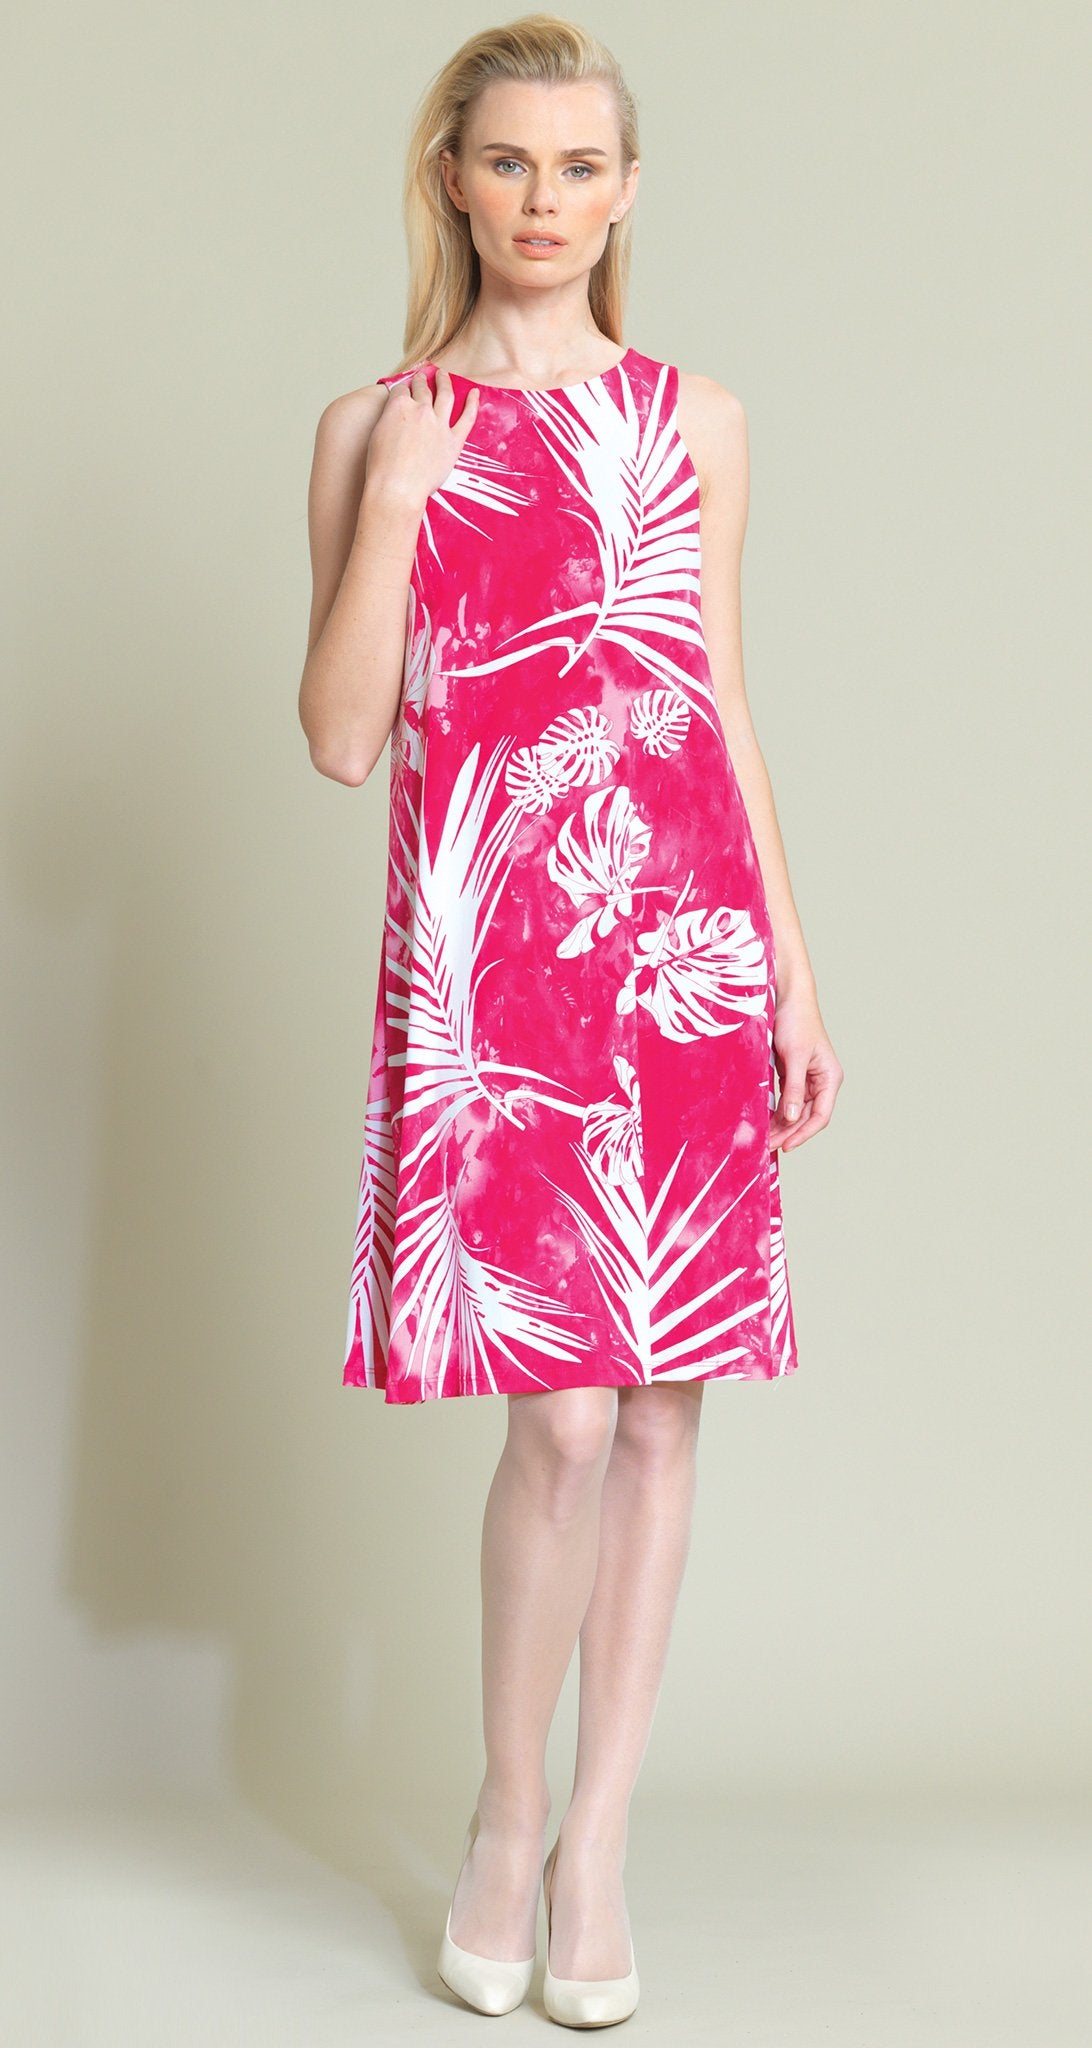 Palm Print Jewel Neck Swing Dress - Pink/White - Clara Sunwoo